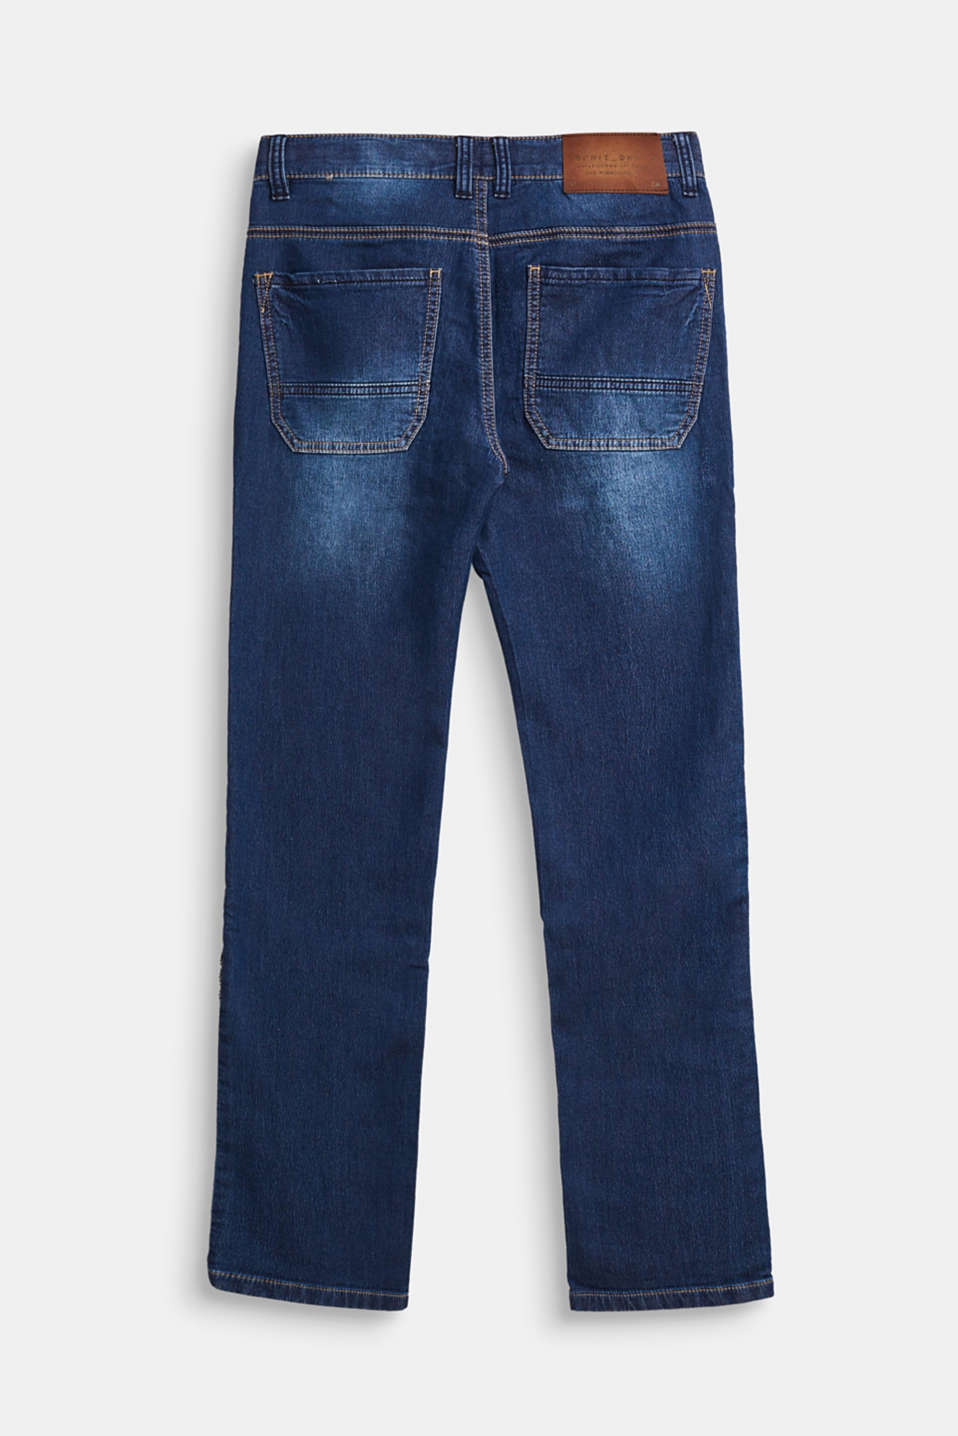 Jeans stretch comodi stile jogger